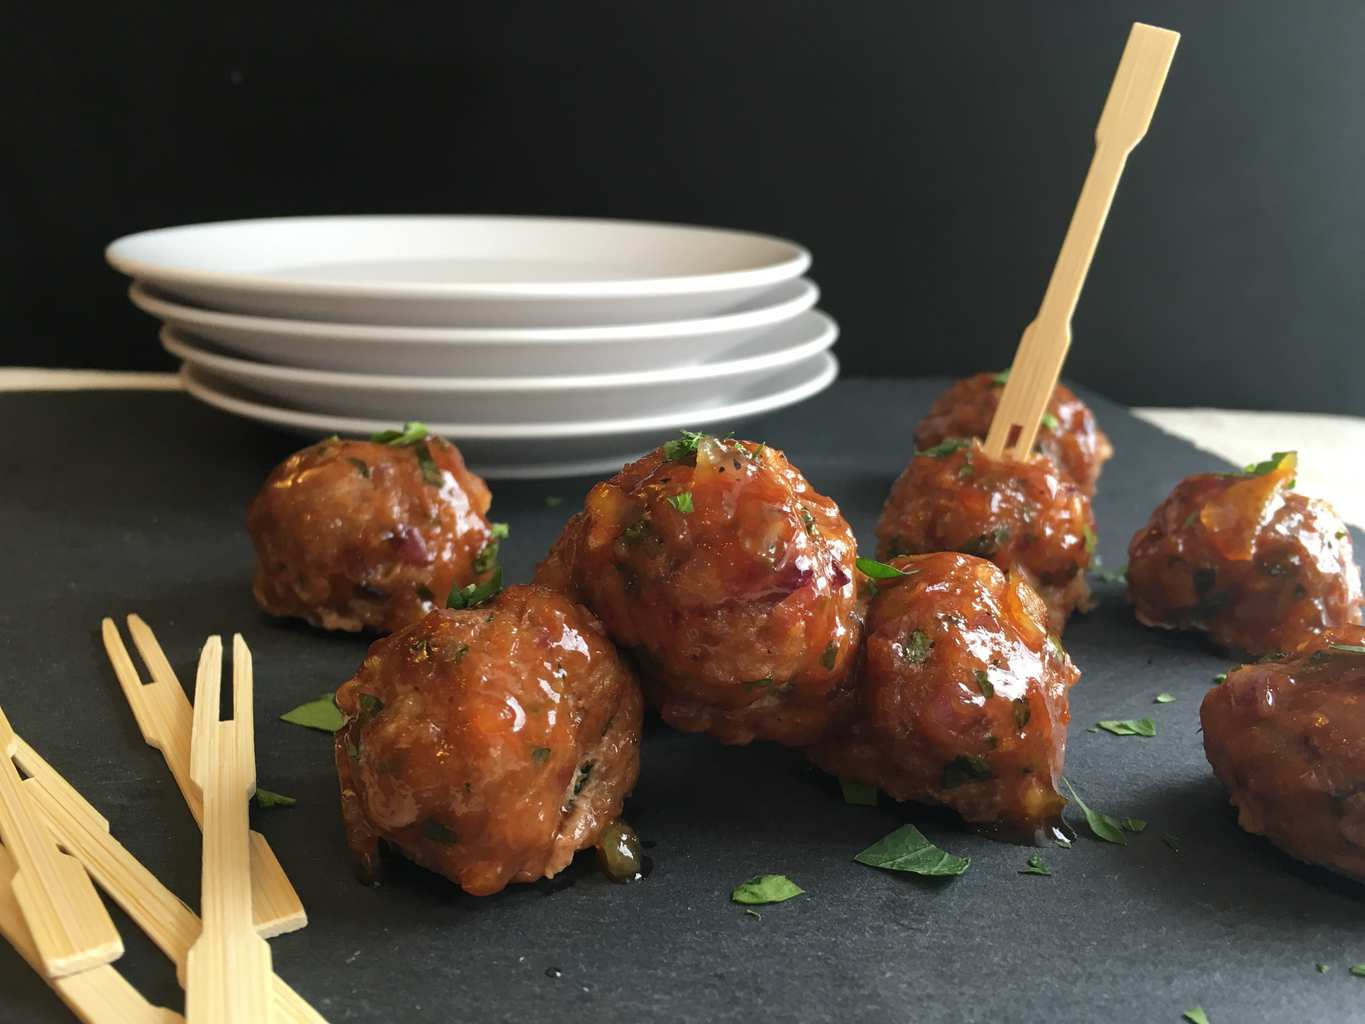 Chicken Meatballs on gray surface with wooden toothpicks